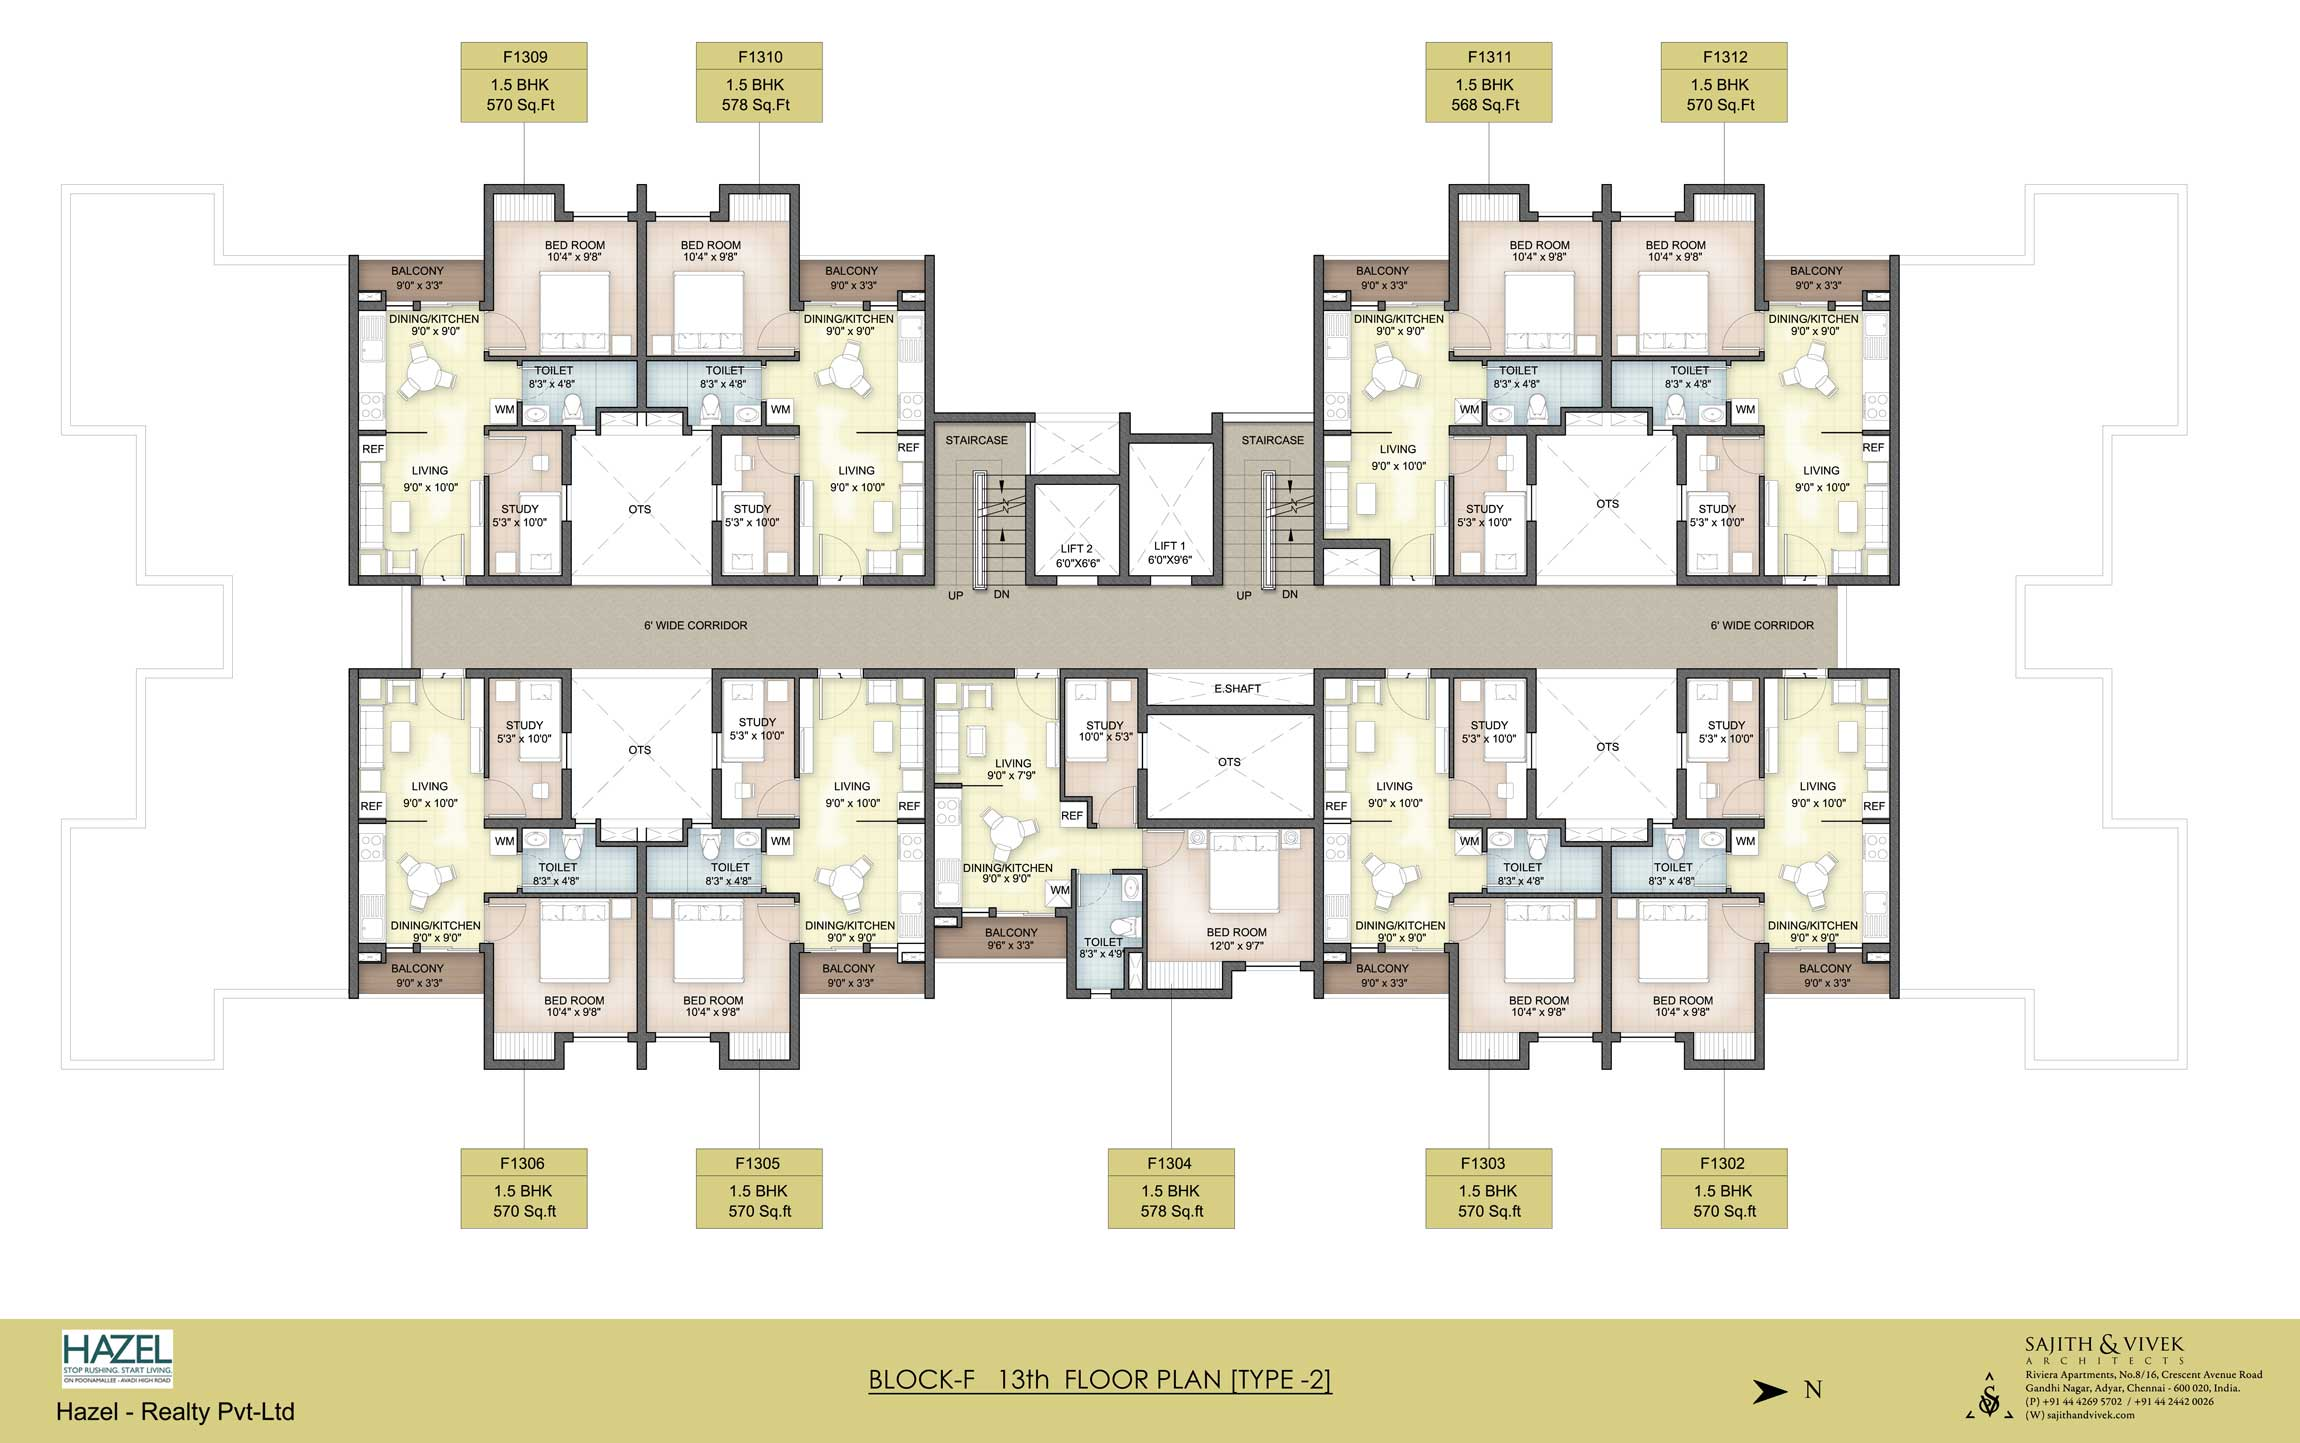 Buy 1 2 3 bhk apartments flats for sale in avadi for 3 room flat floor plan